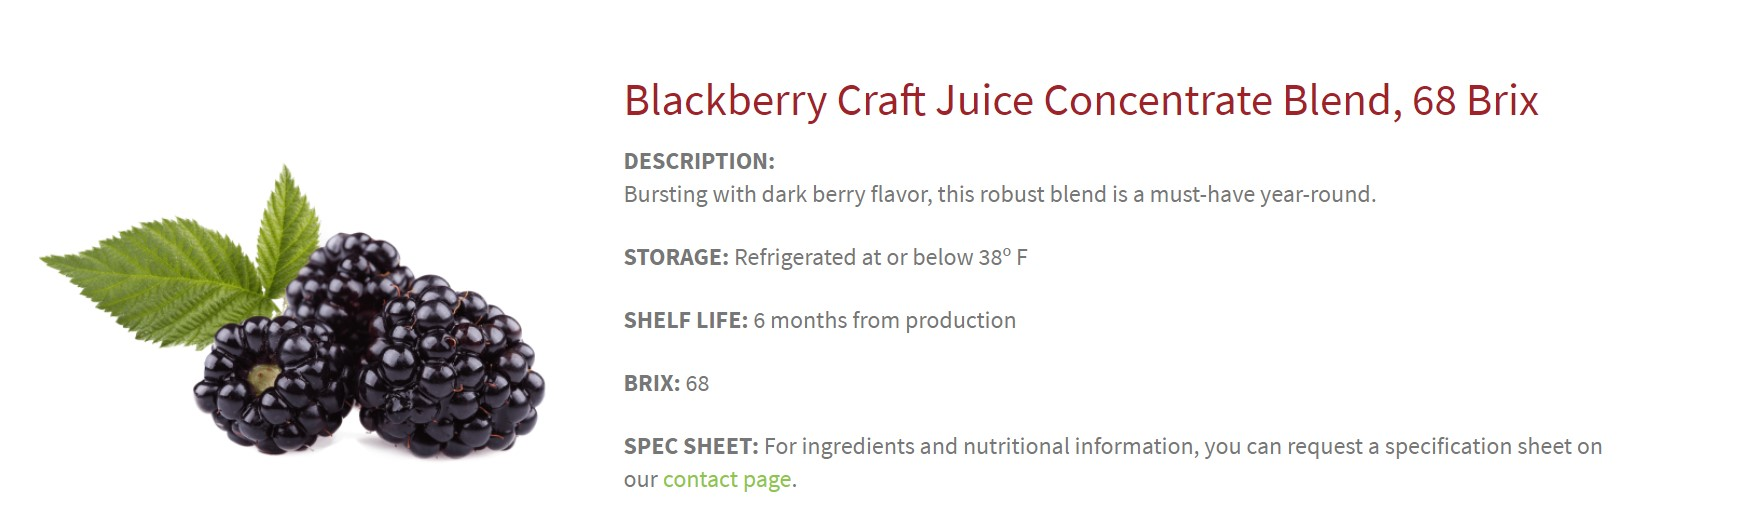 Screenshot of blackberry concentrate page, including description, storage, shelf life, and brix